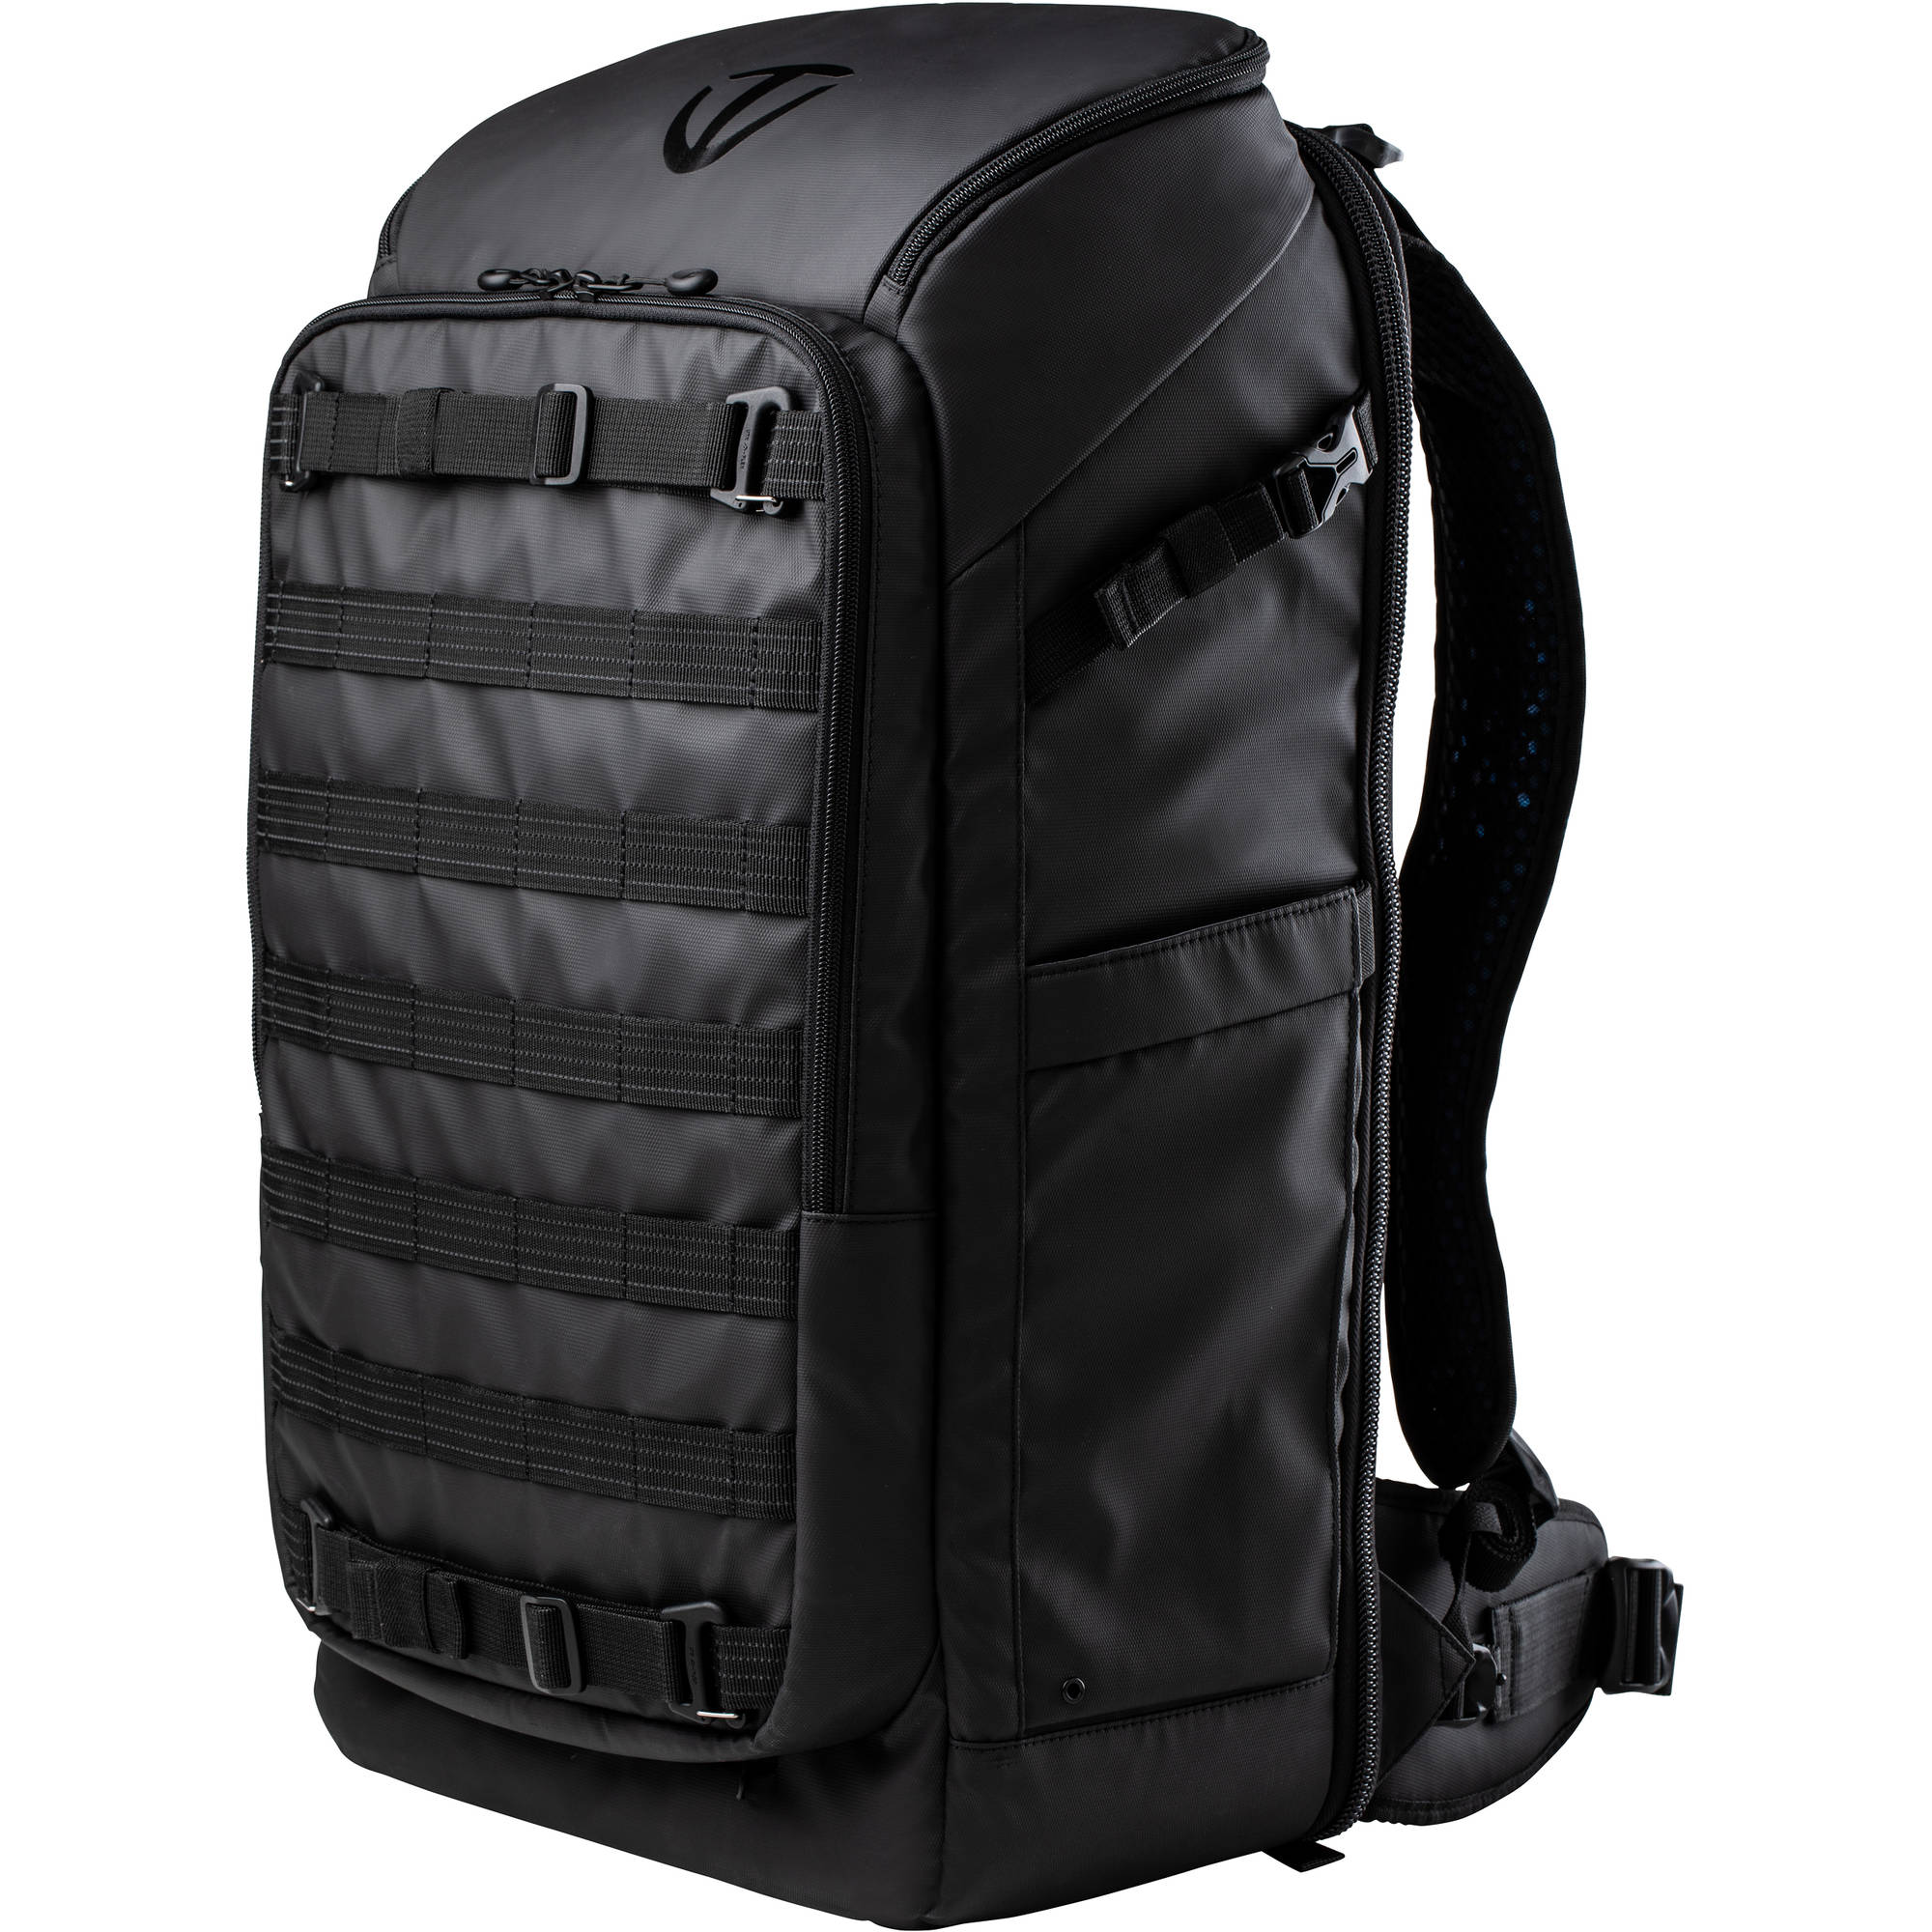 Tenba Axis Tactical 32L Backpack (Black)